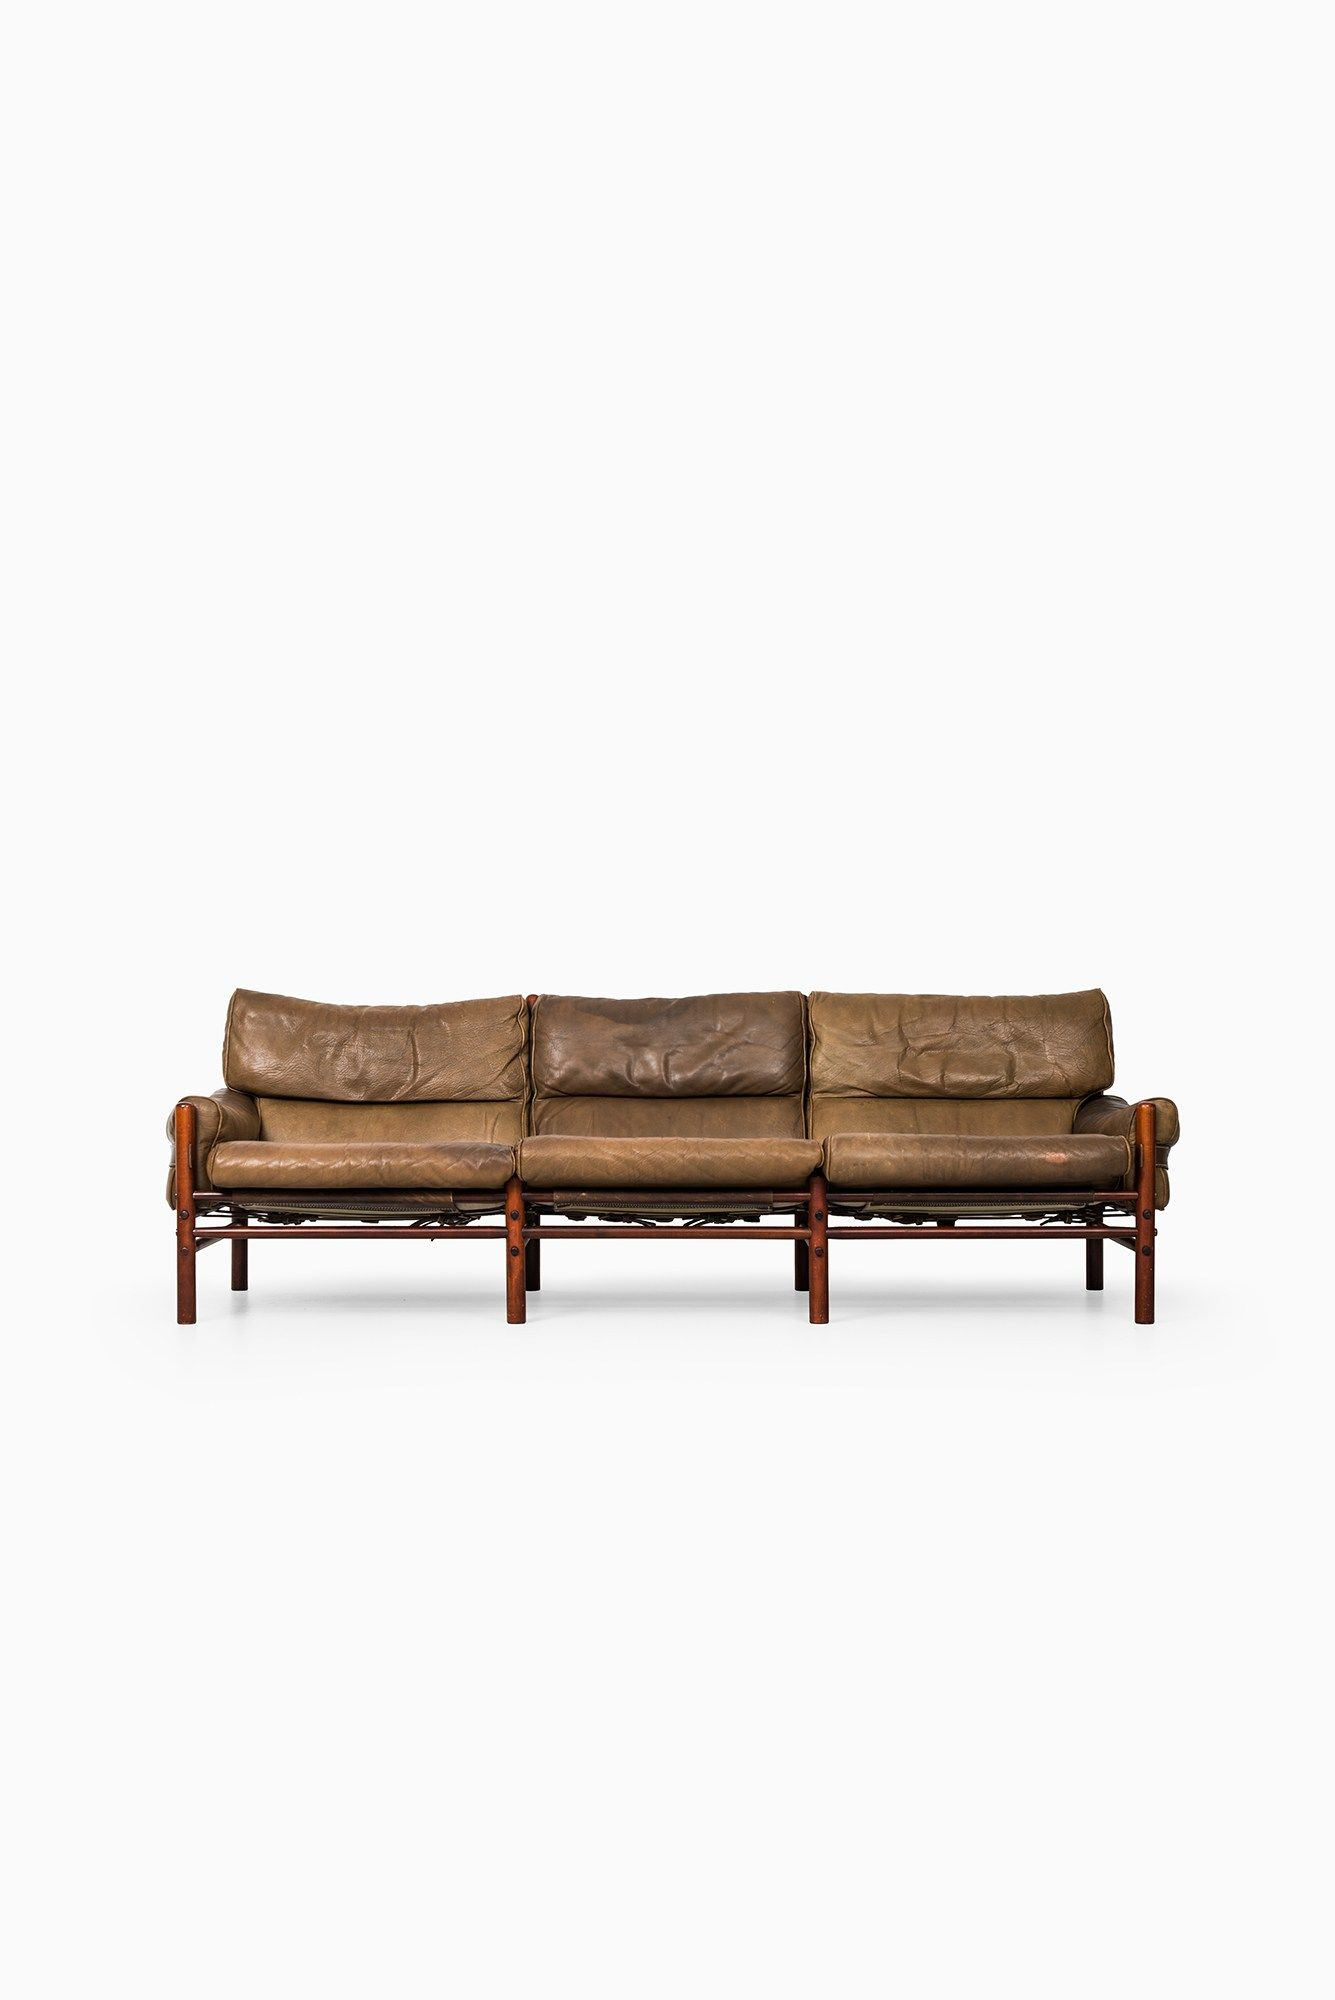 Arne Norell Kontiki Sofa By Arne Norell AB At Studio Schalling